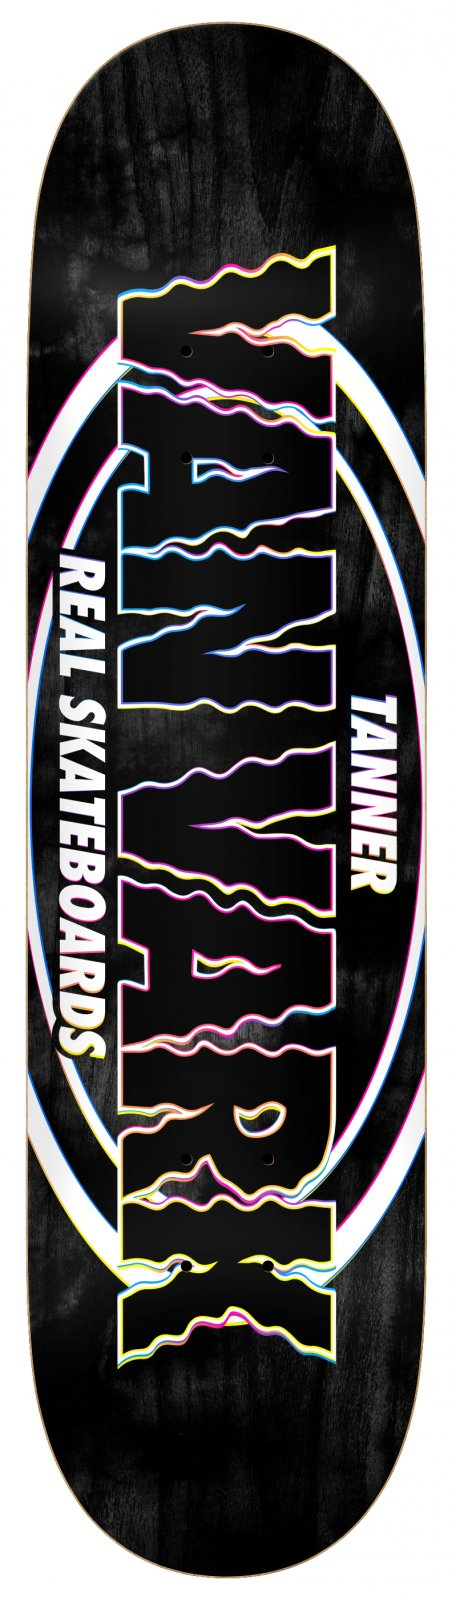 Real Tanner Pro Oval 8.38 x 32.25 Skateboard Deck